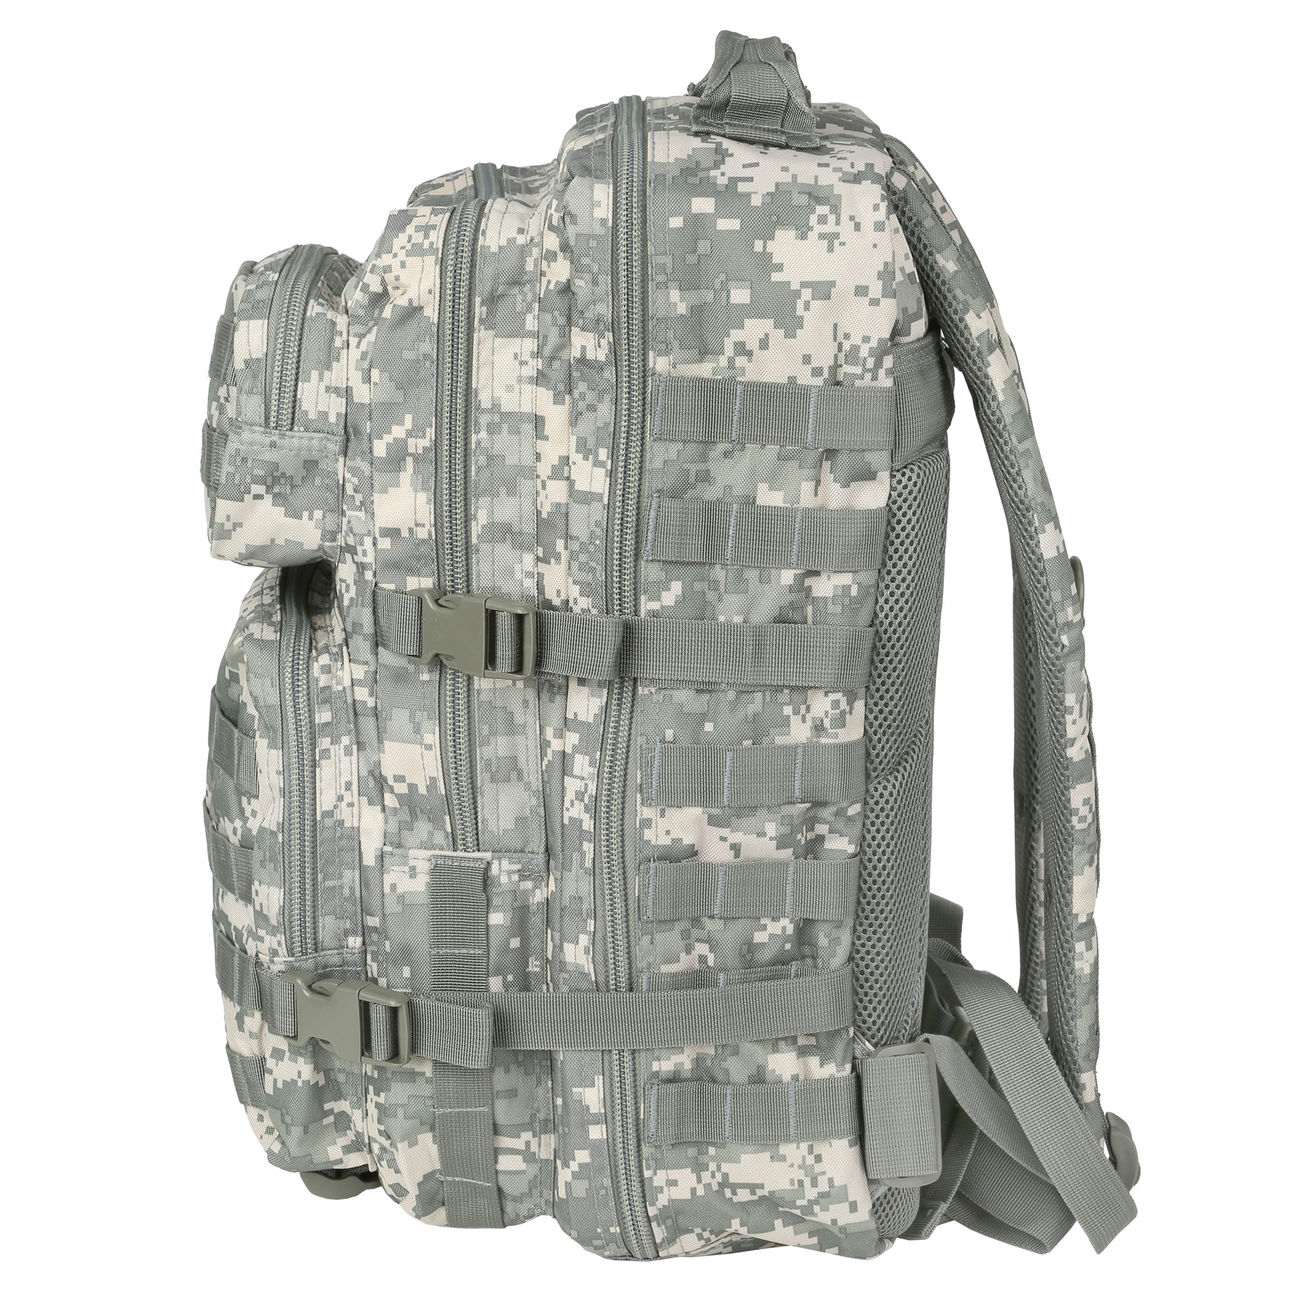 Mil-Tec Rucksack US Assault Pack II 40 Liter at-digital 2